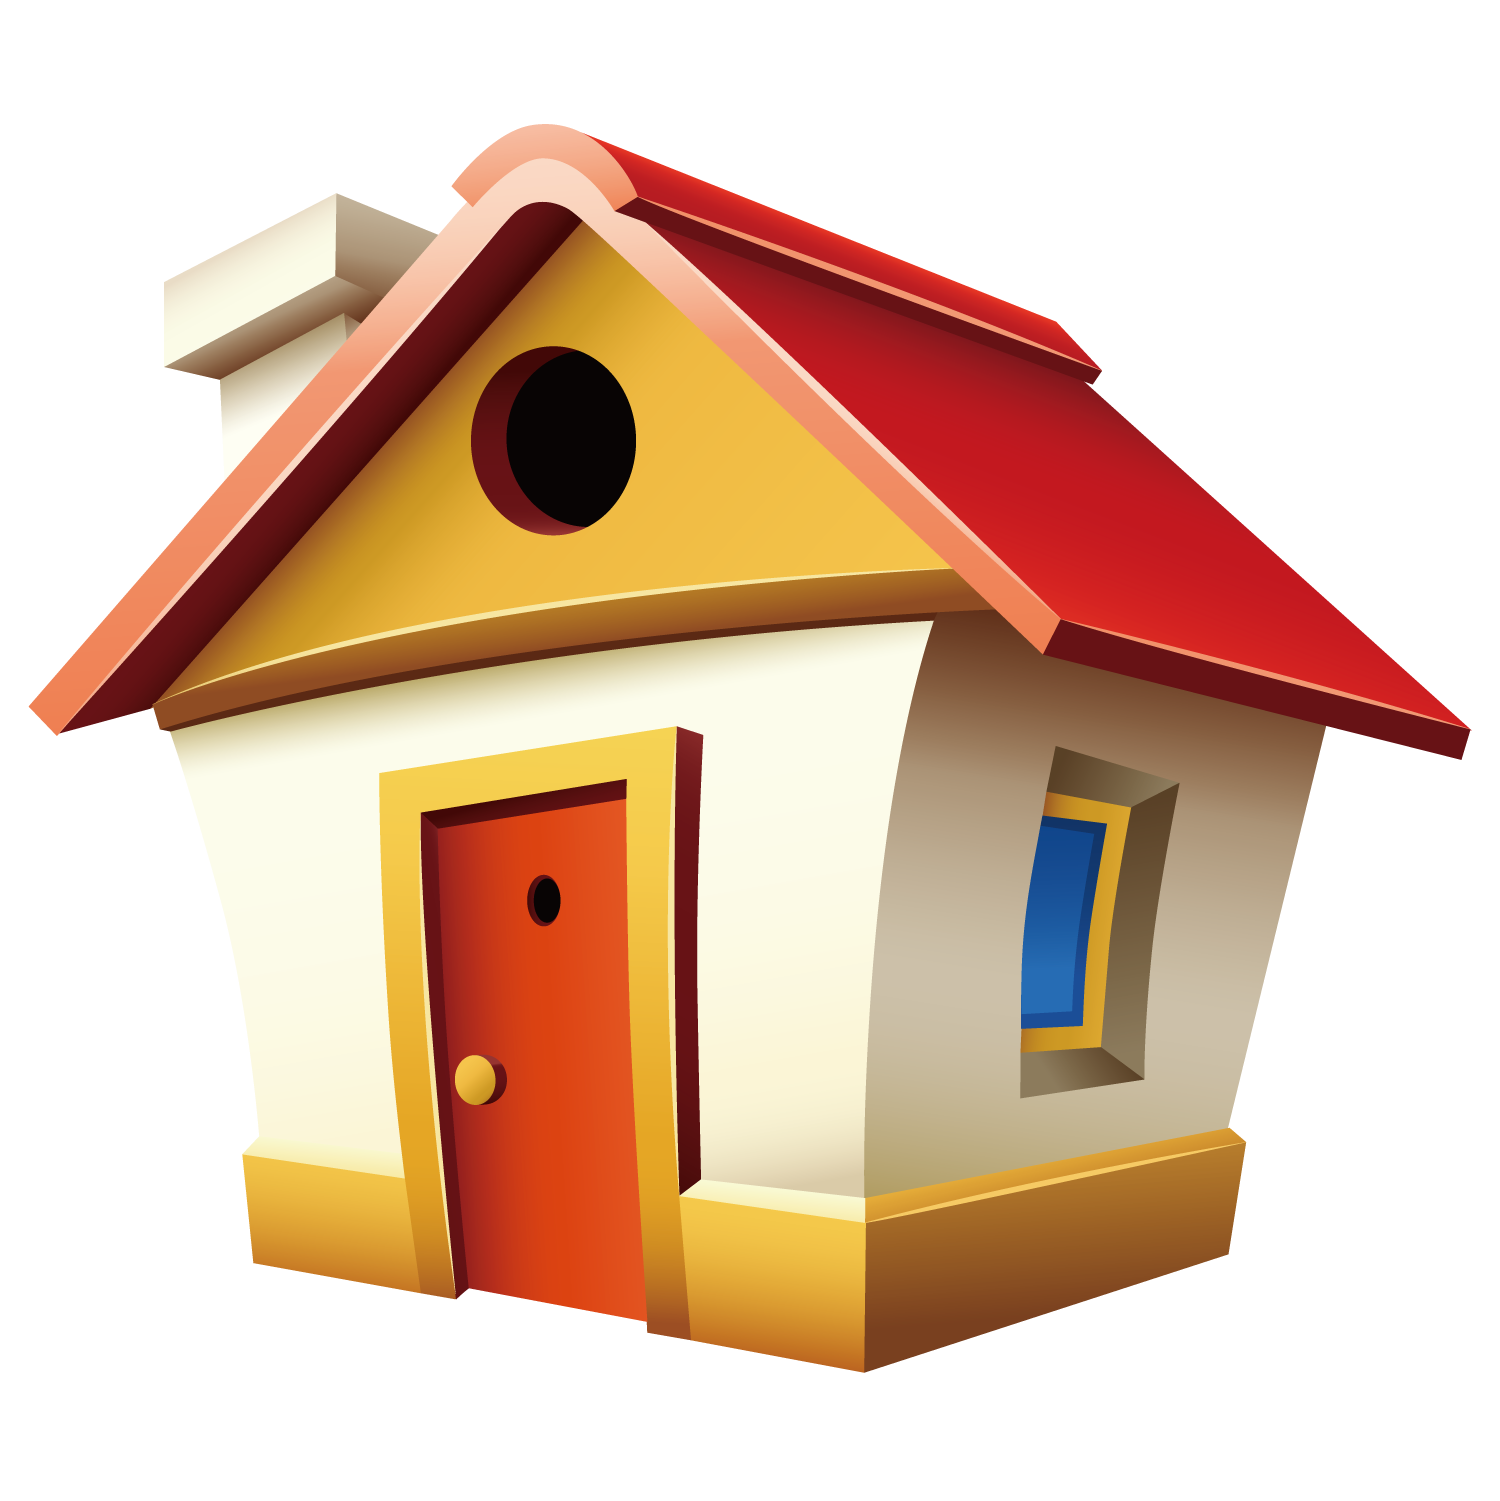 English house una casa. Home clipart country home